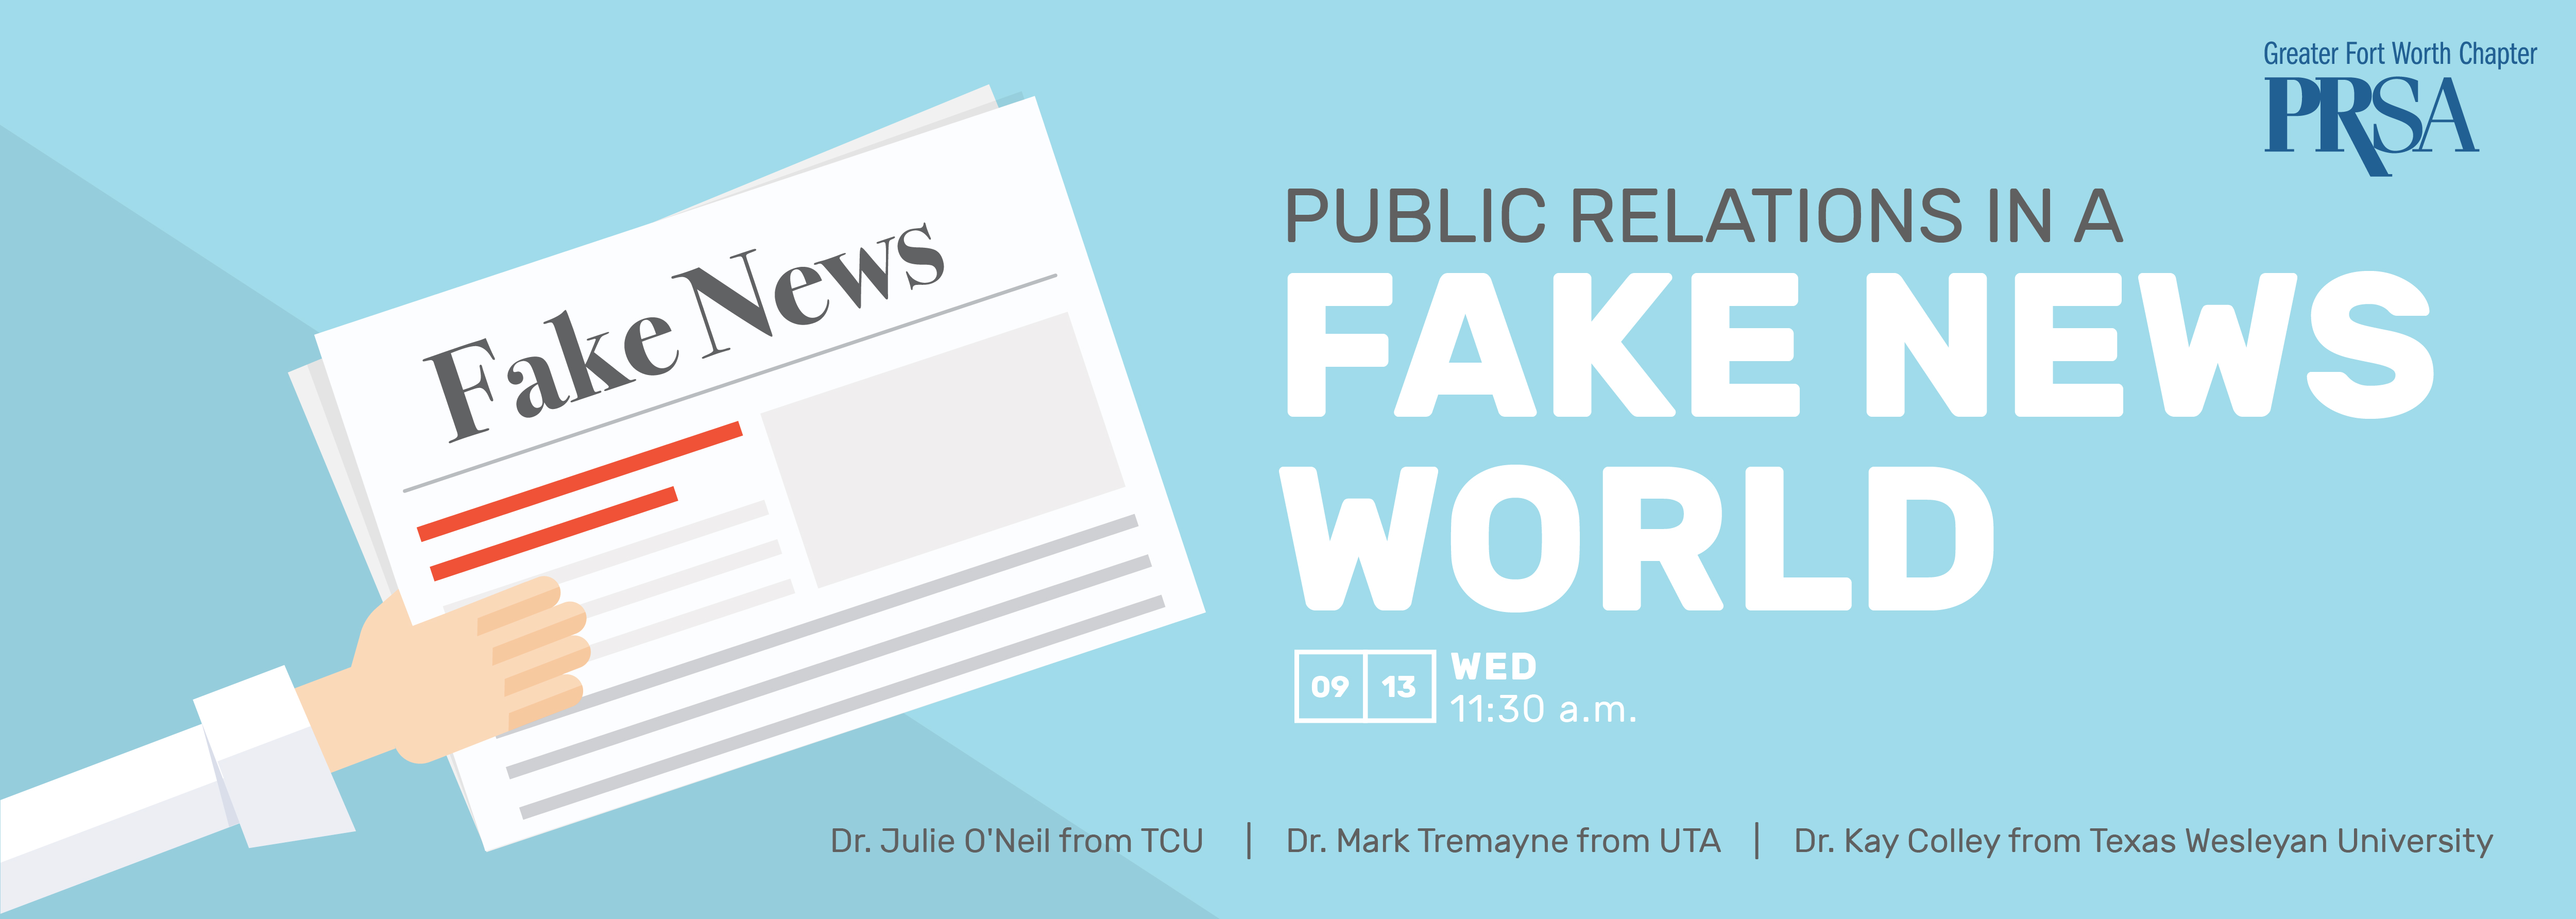 Public Relations in a Fake News World